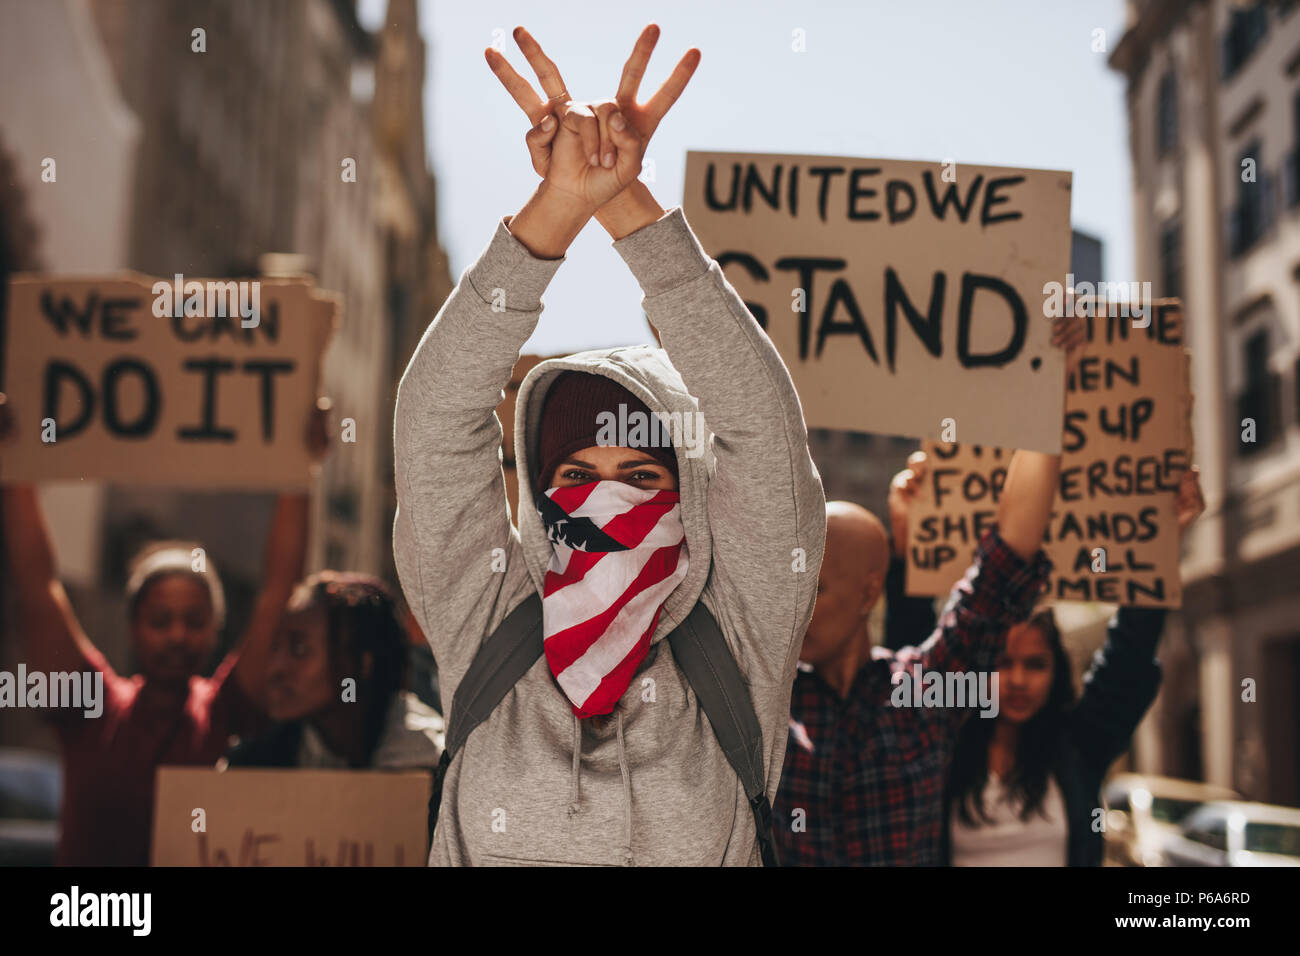 Woman with mouth covered gesturing peace sign with both hands on road. Group of women protesting silently on road. Stock Photo